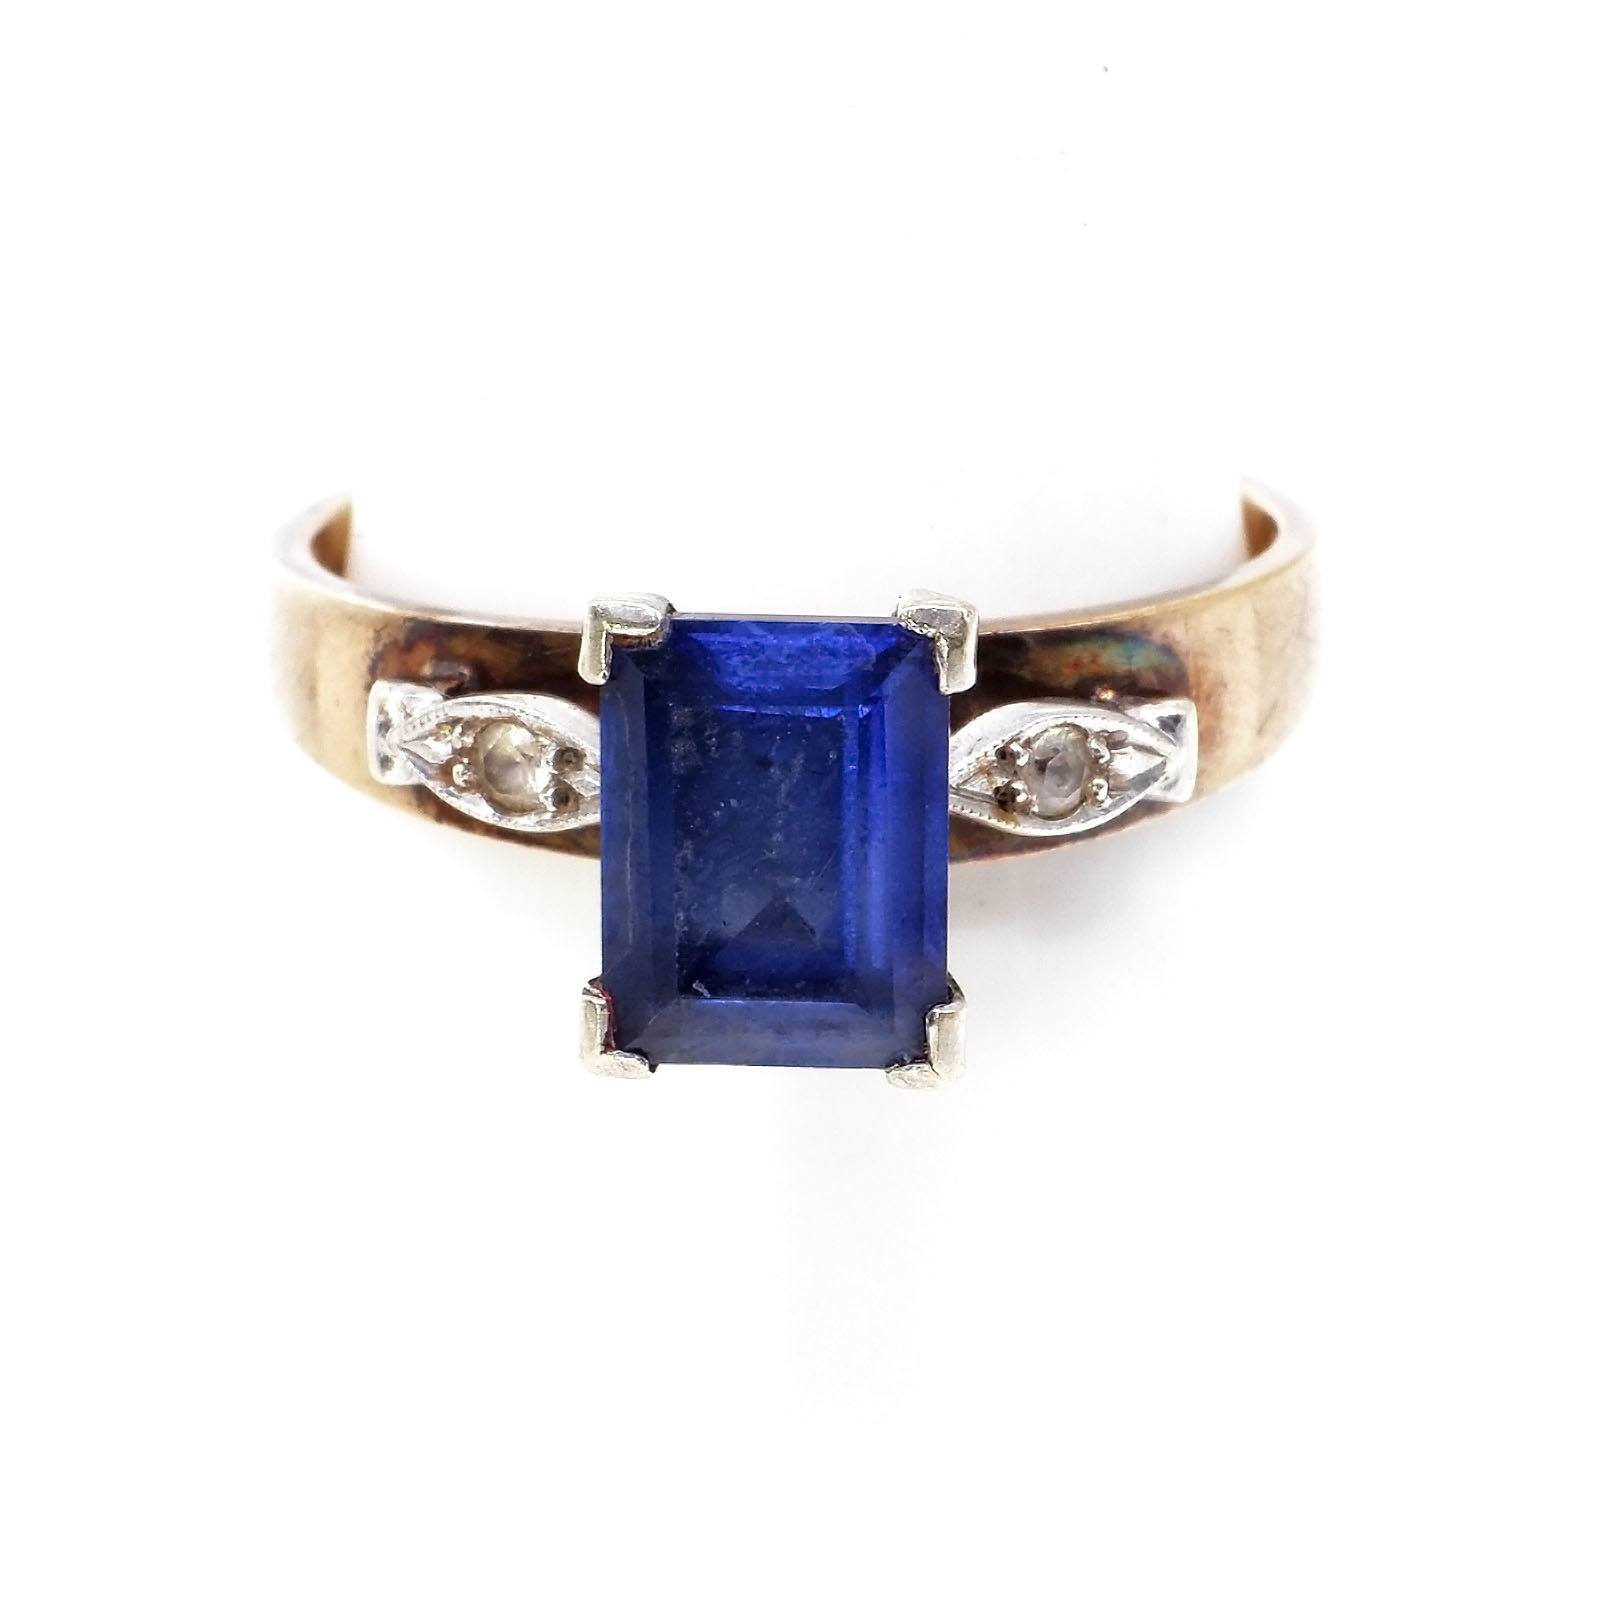 '14ct Yellow and White Gold Ring with Banquette Cut Blue Sapphire, Raised Leaf Shoulders with Small Single Cut Diamond, 3.1g'